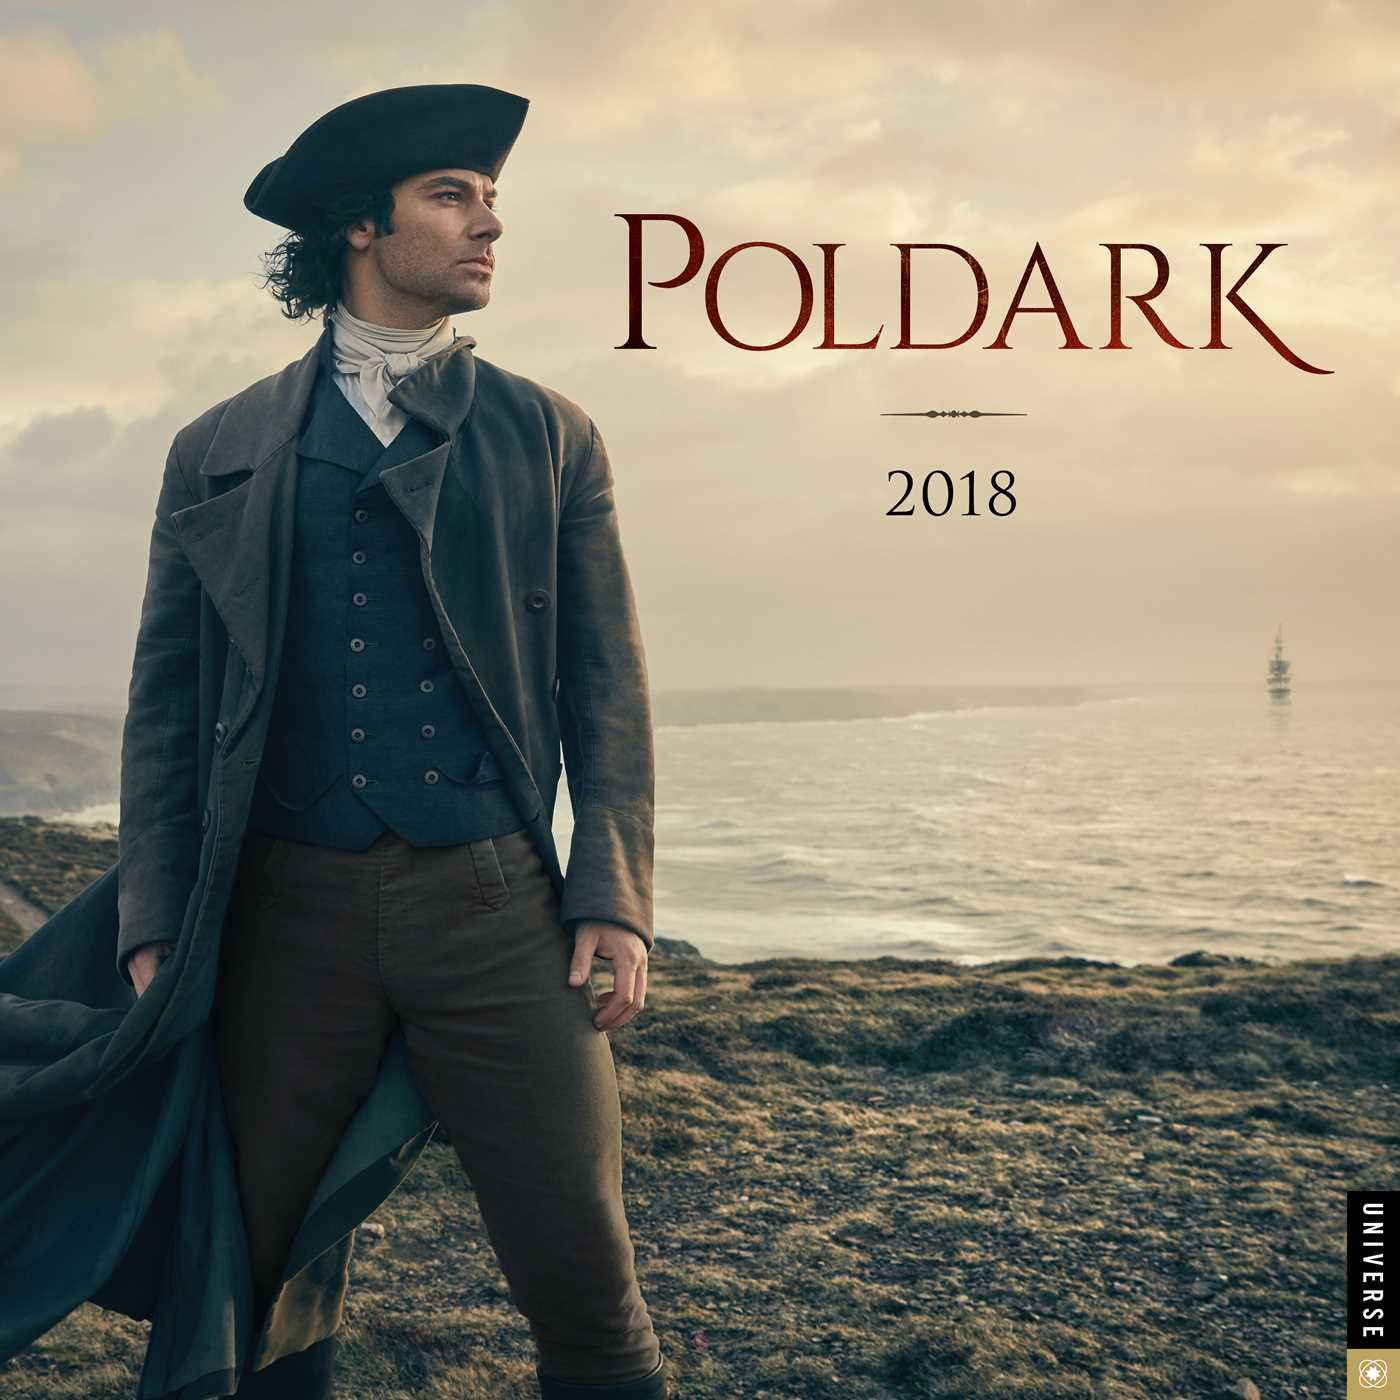 Image result for poldark season 4images